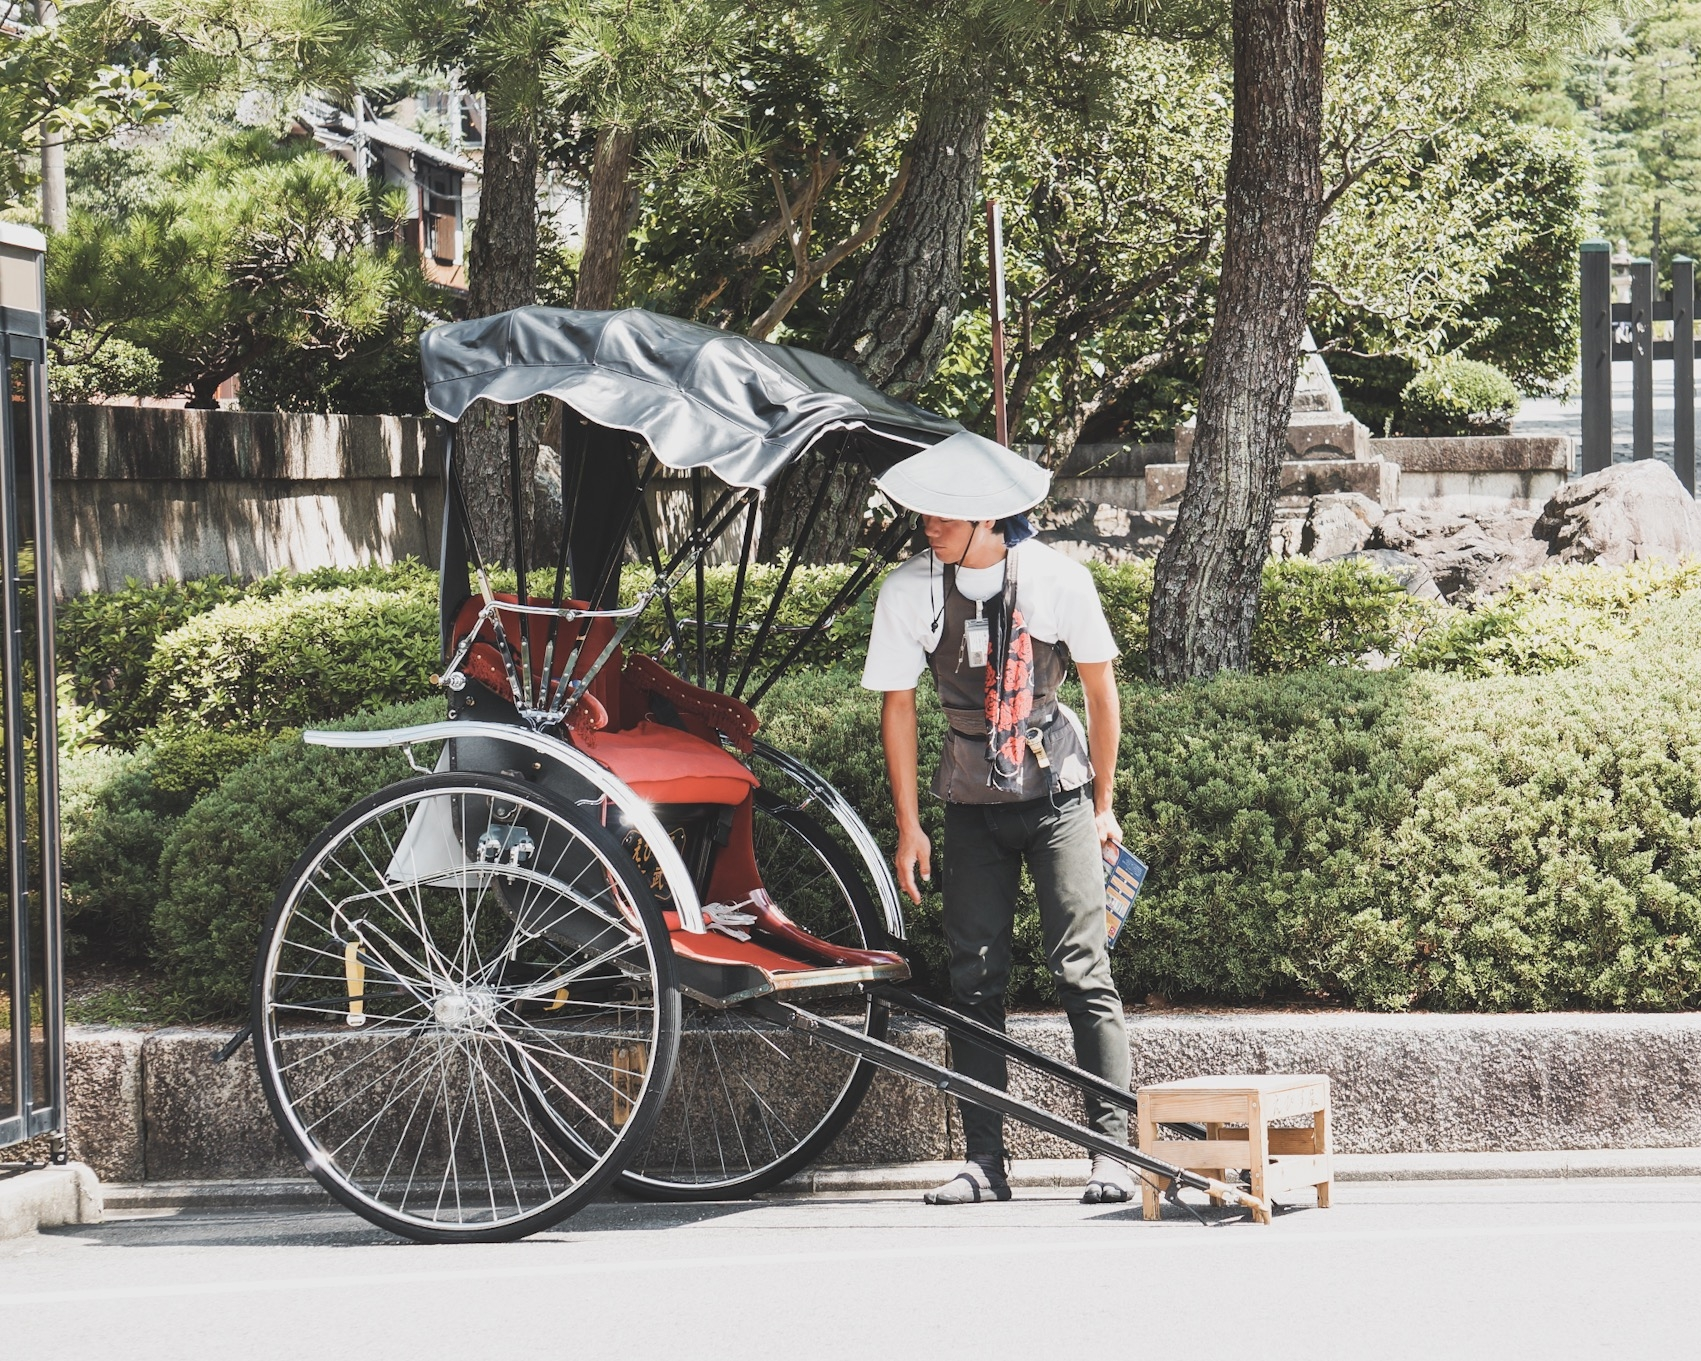 A rickshaw driver in Kyoto, Japan